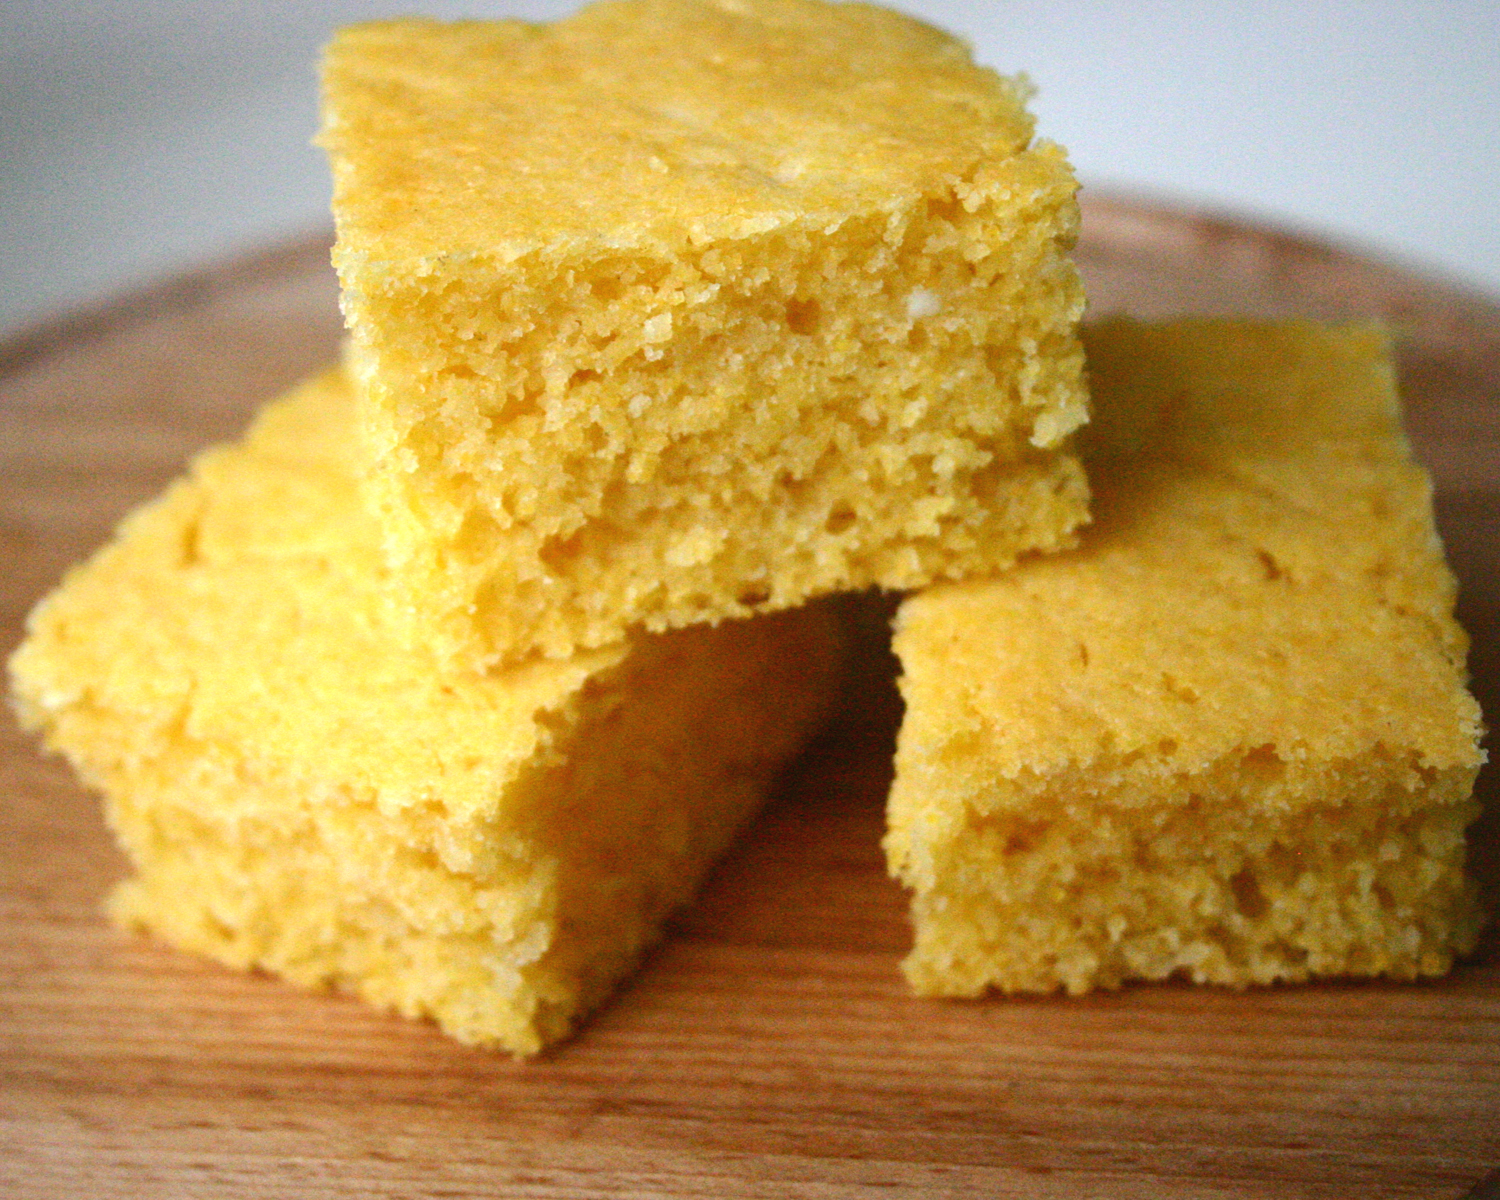 Nuts about food: Sweet polenta bread. Are you a purist or not?